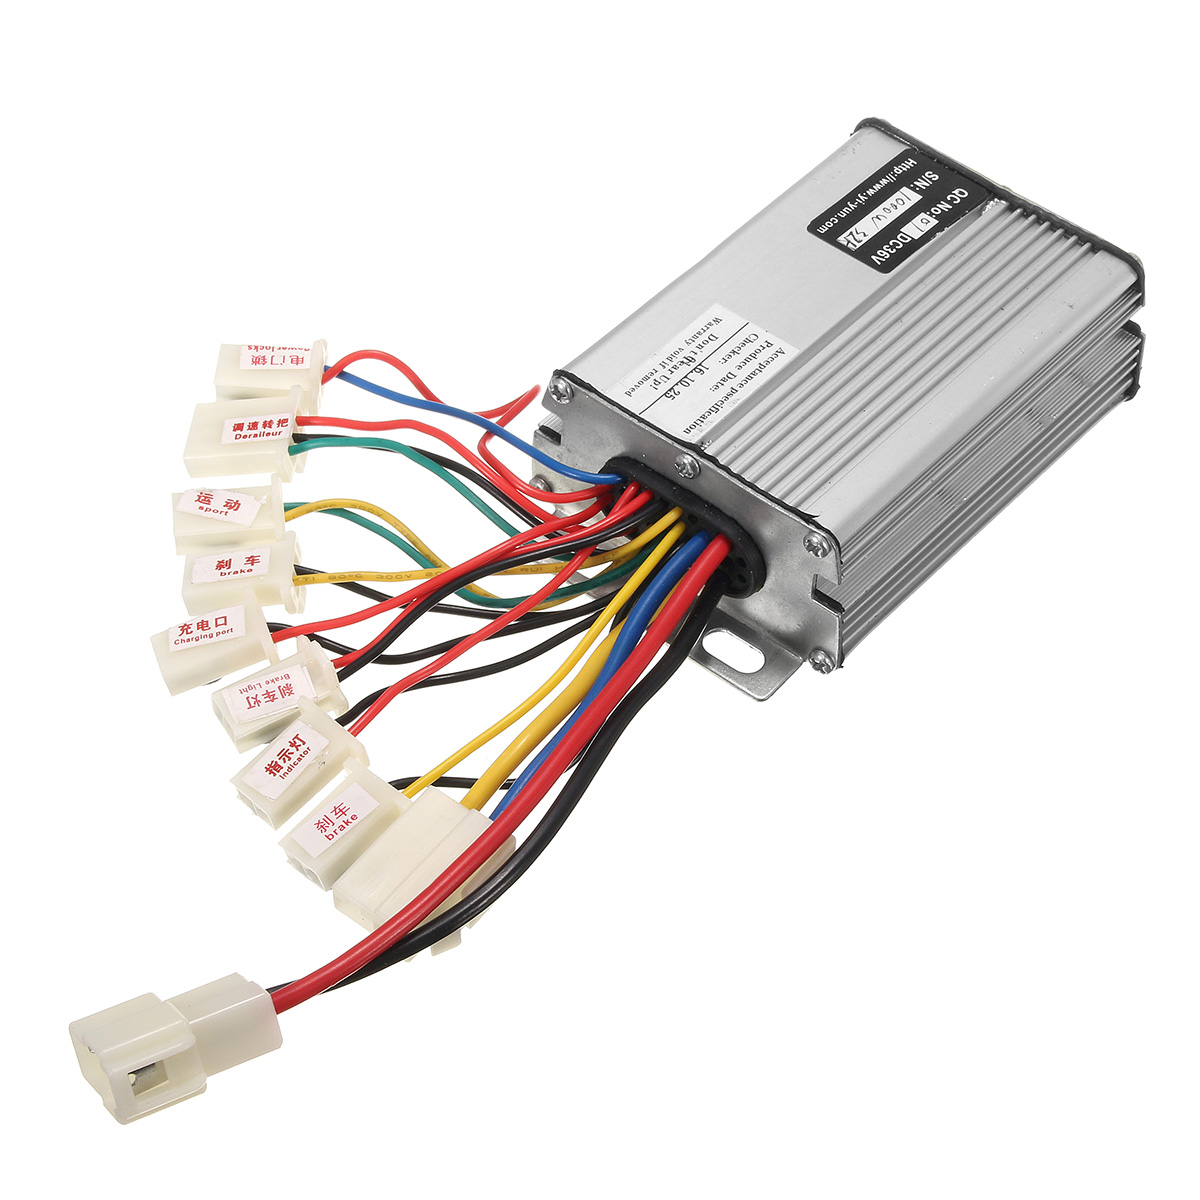 36v 1000w electric scooter motor brush speed controller for 36v dc motor controller